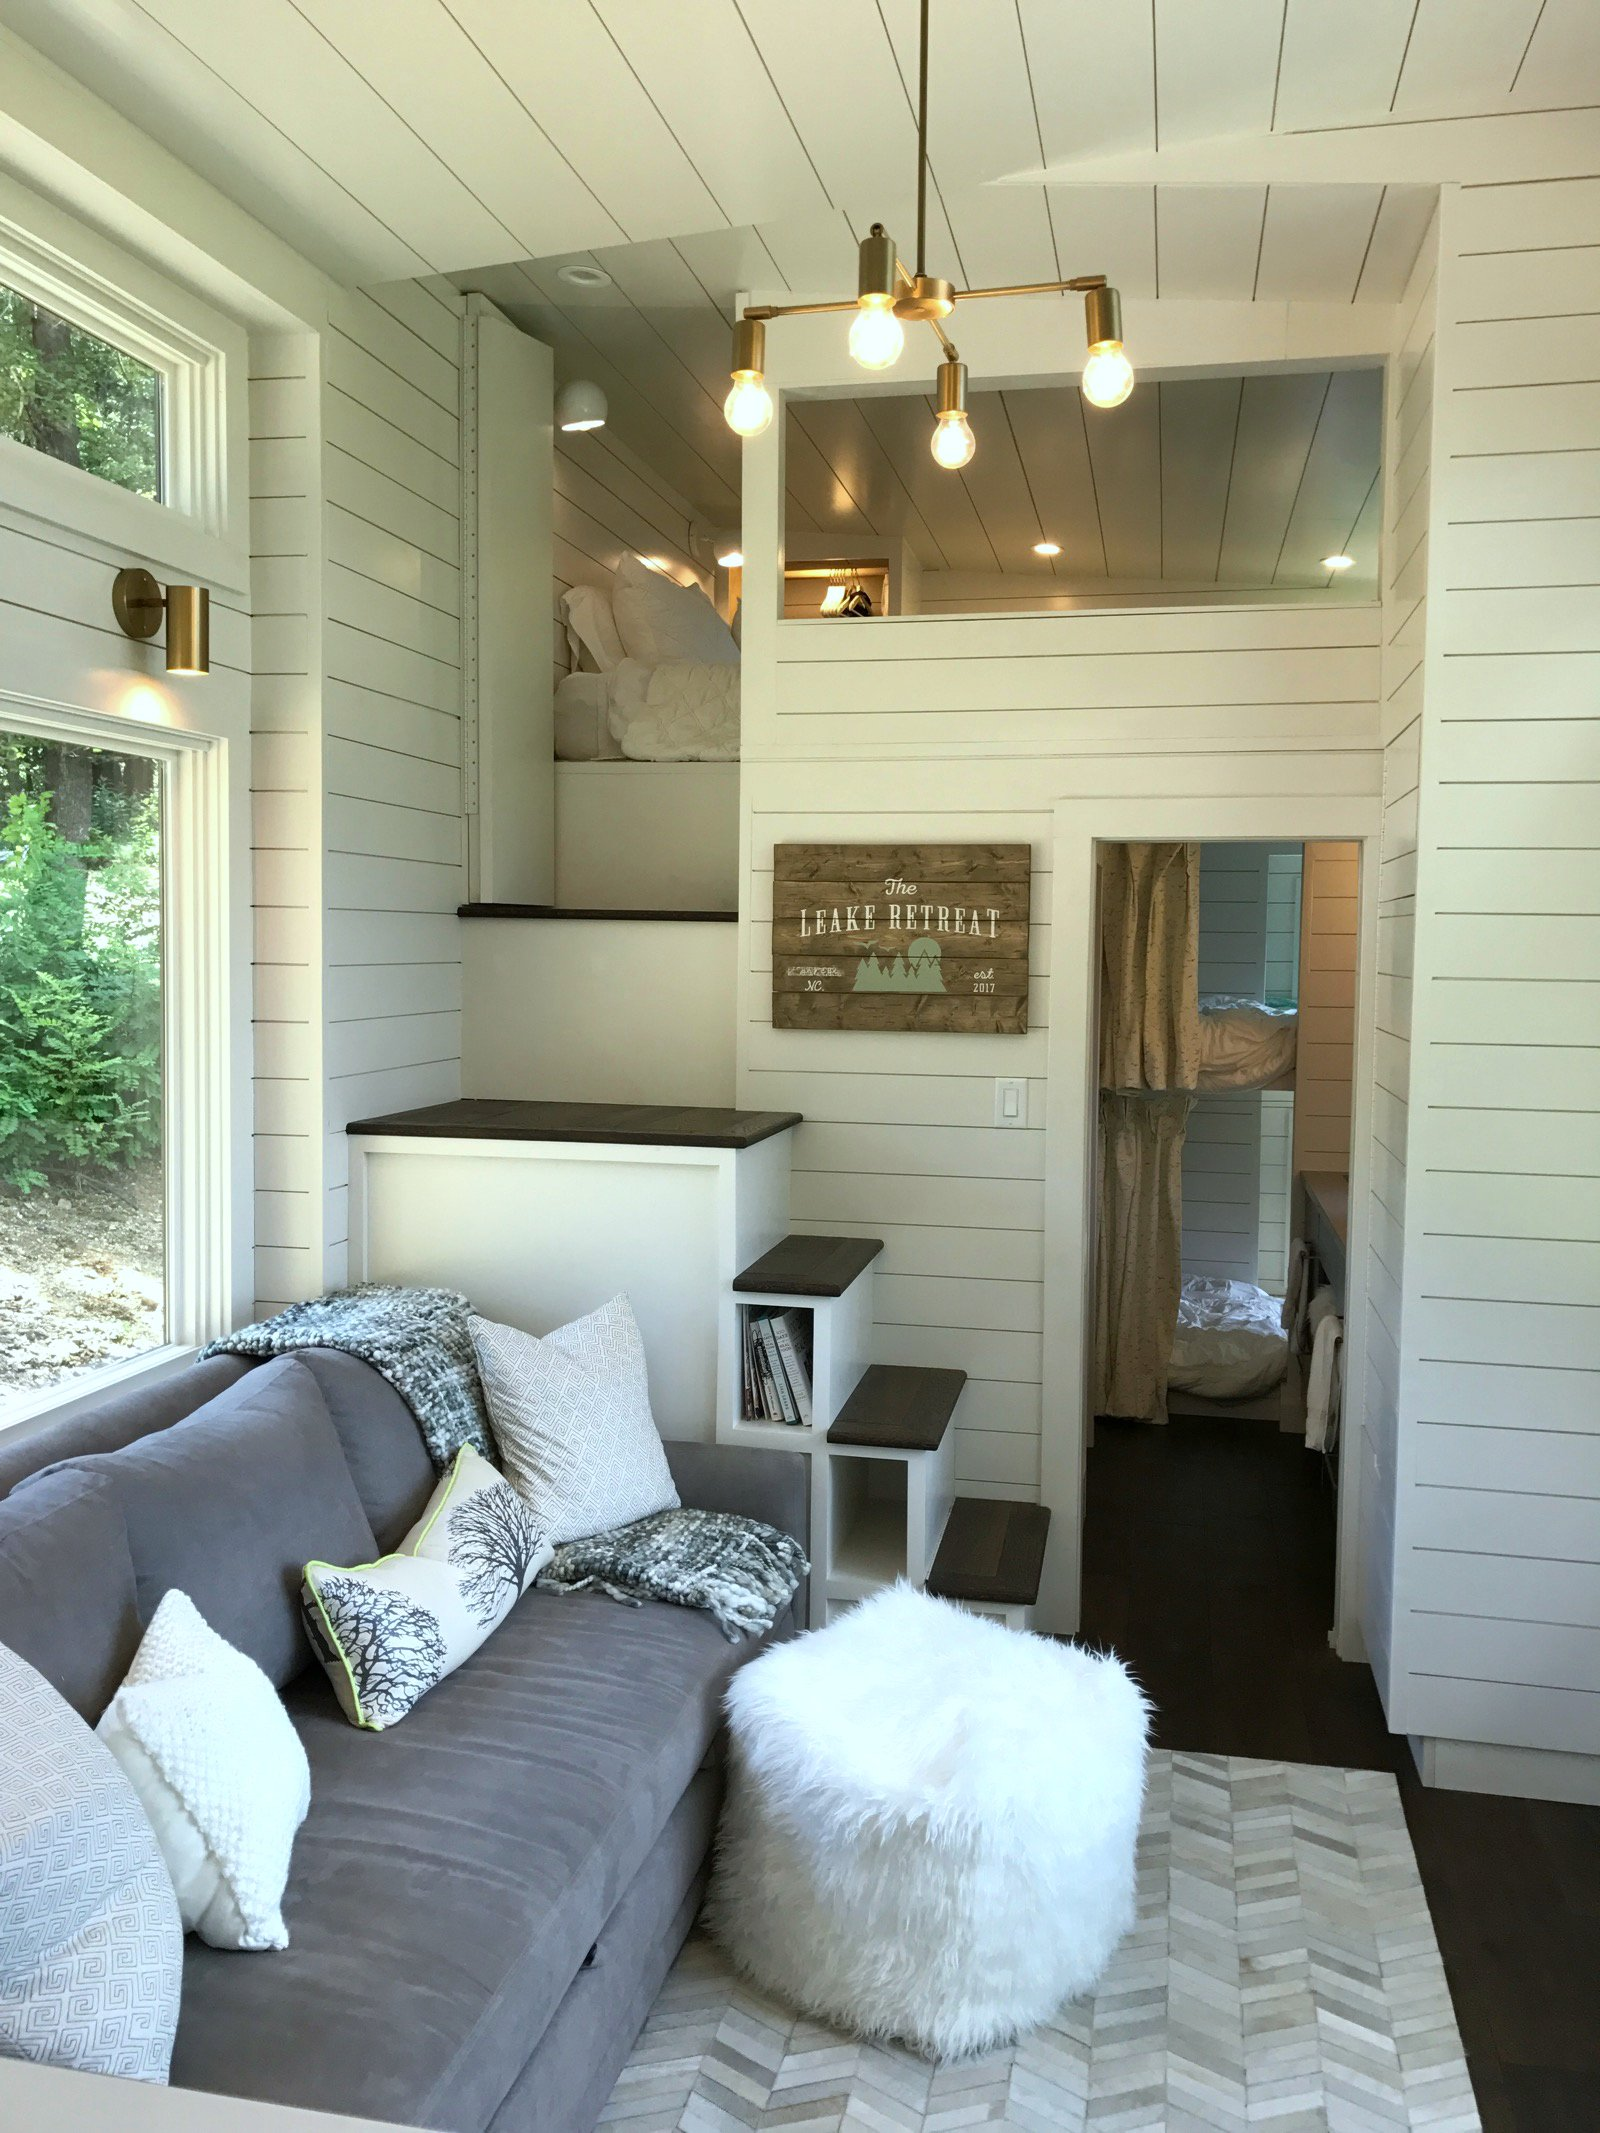 Home Design Ideas: What's In Our New Tiny House Kitchen!